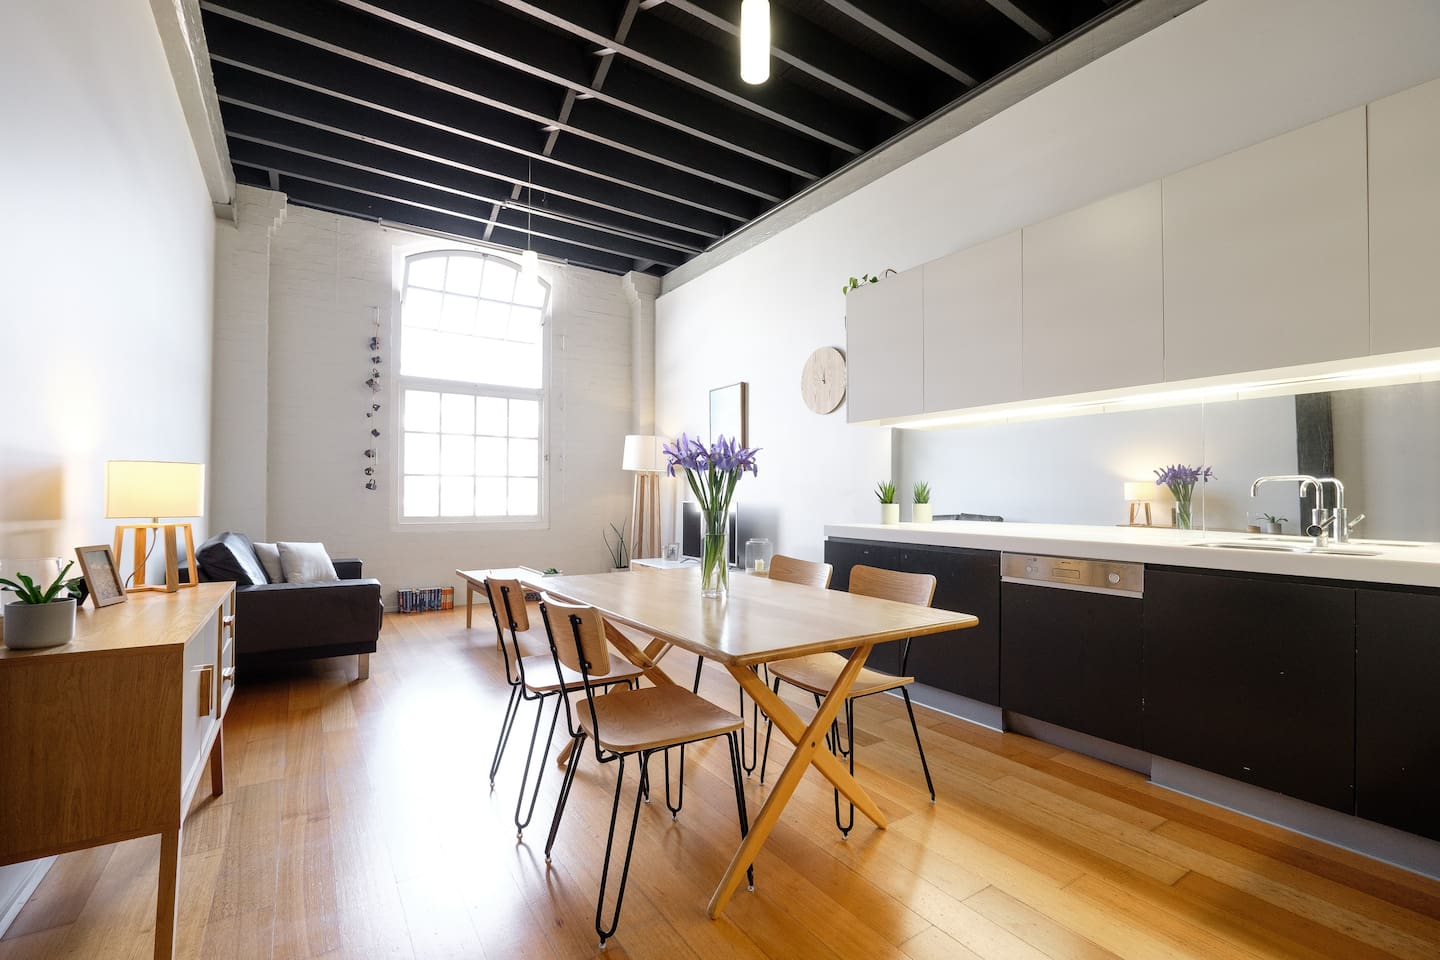 Spacious, elegant and stylish; the generously sized apartment is over 60 square metres, fully quipped with all amenities and ideal for long term guests.